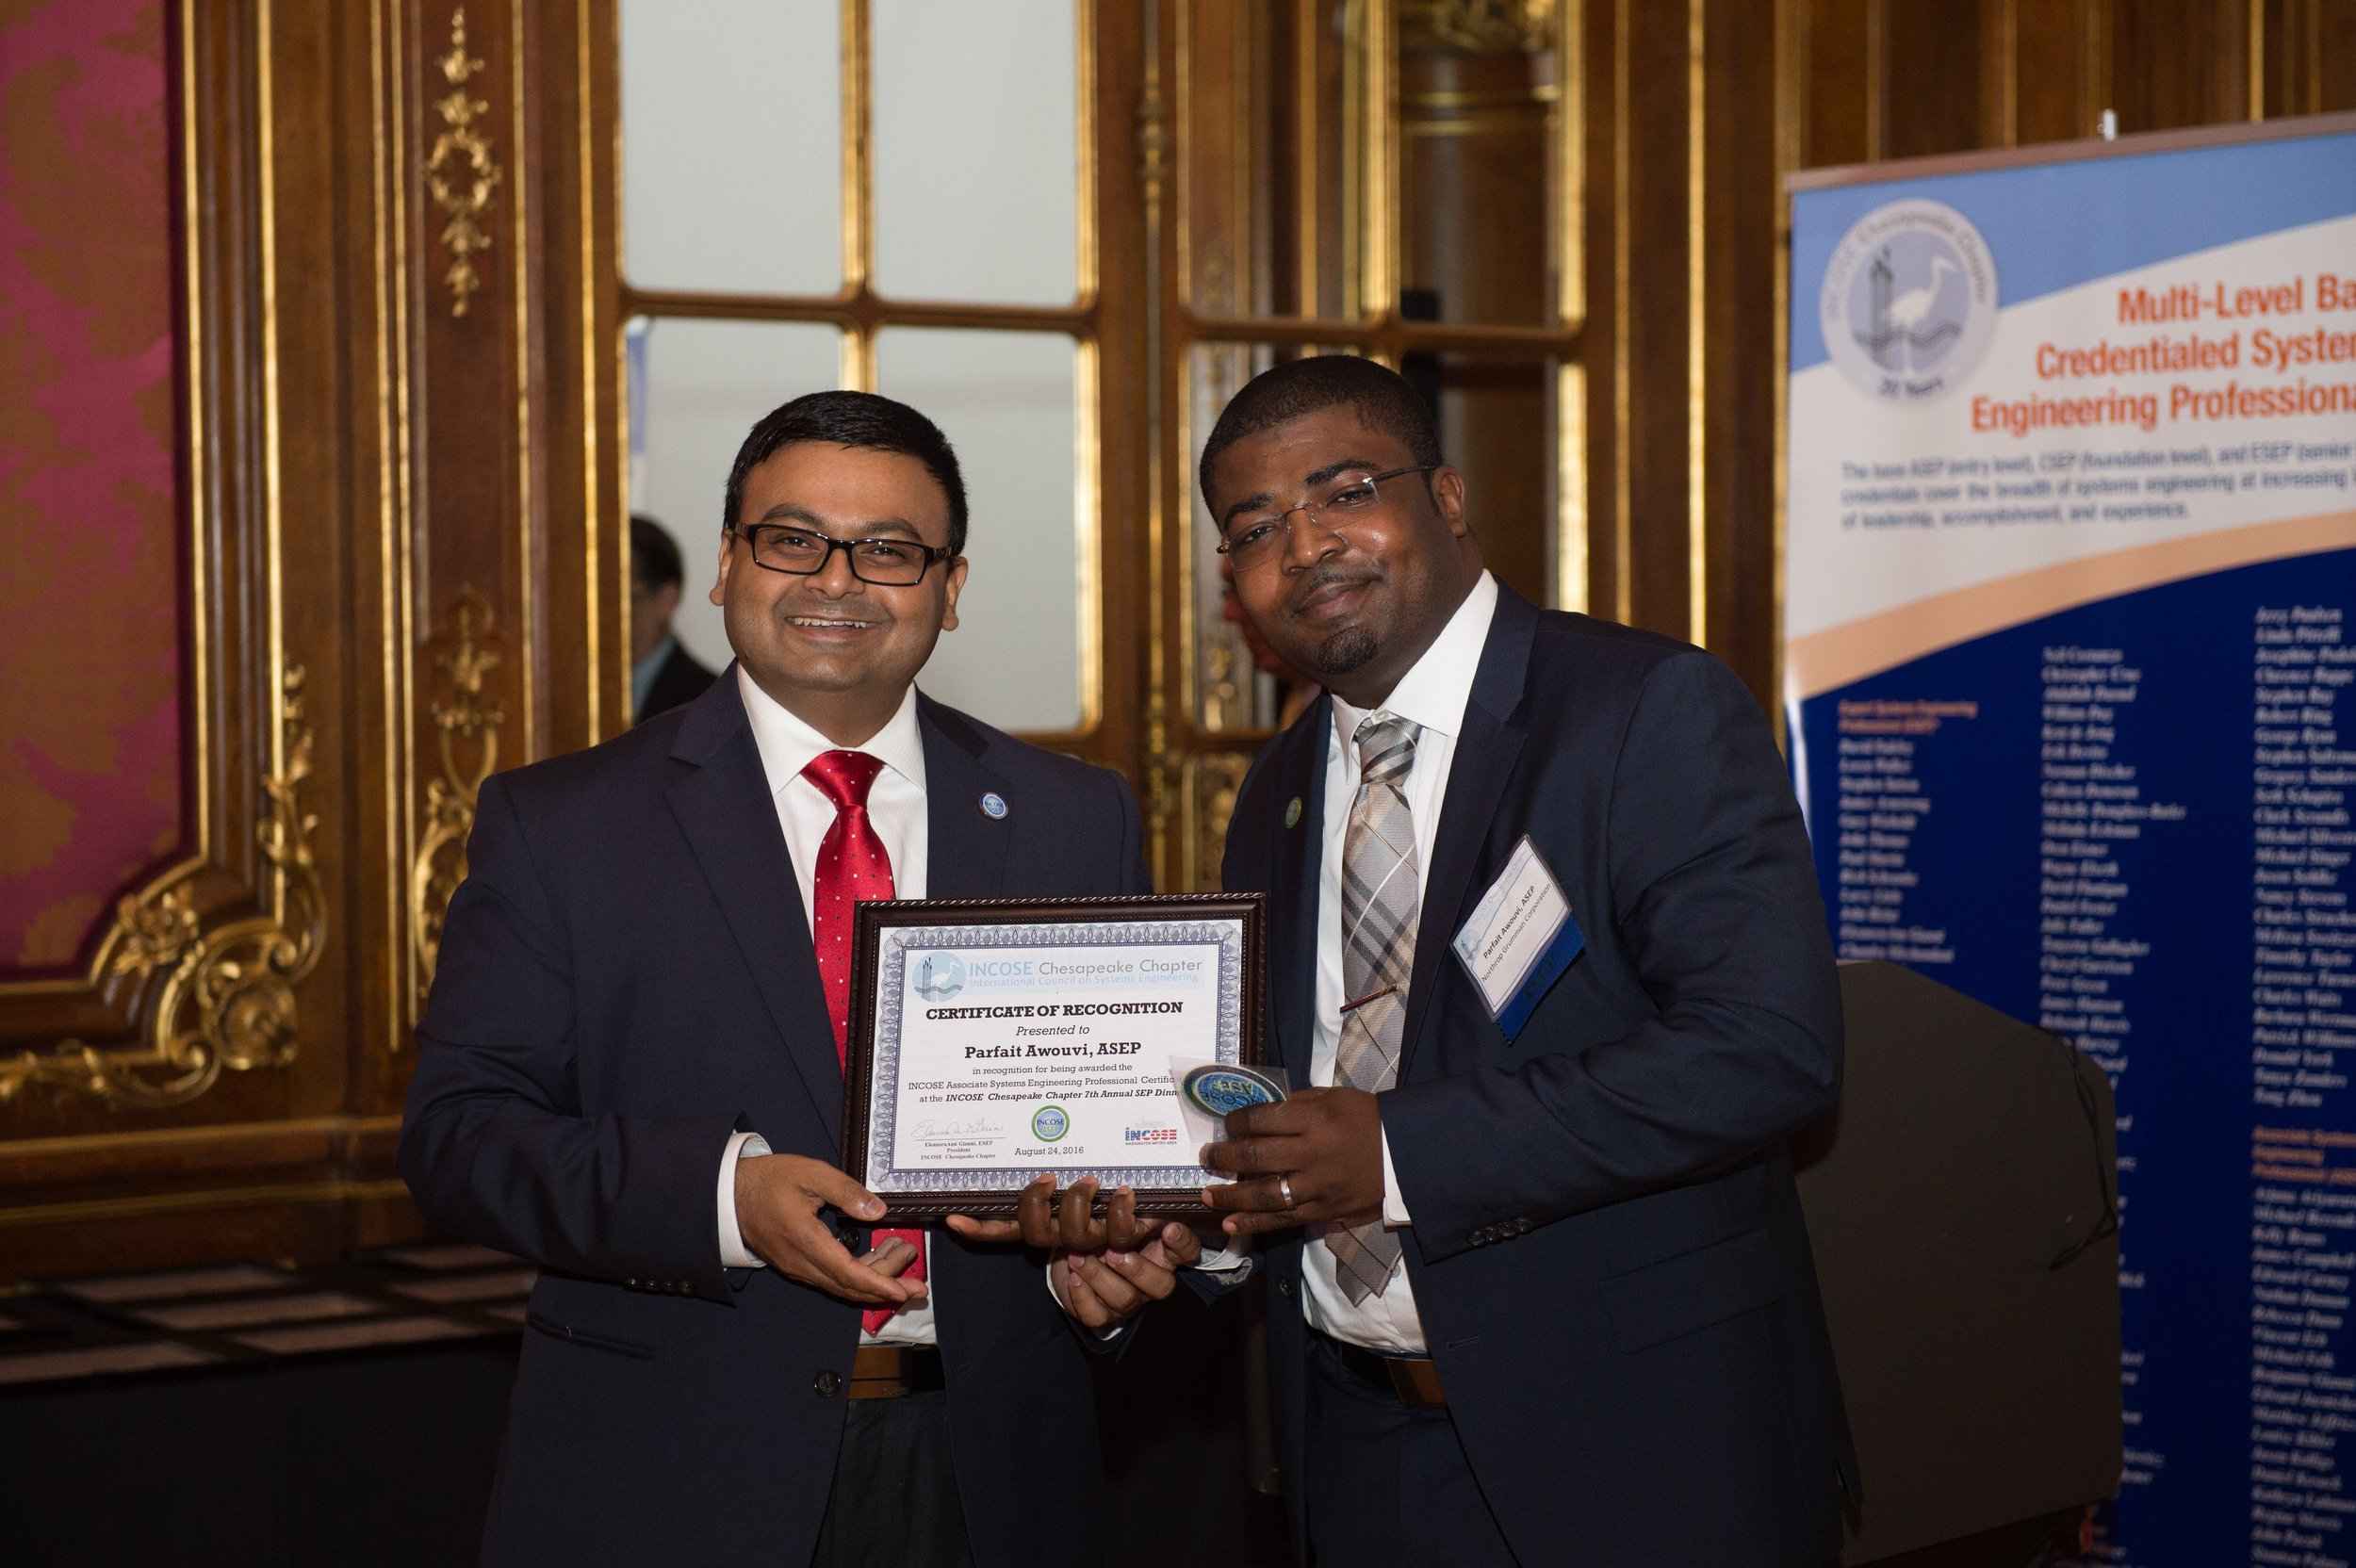 Dr. Muhamad Islam, CSEP, President of WMA, presents an ASEP Certificate of Recognition to Mr. Parfait Awouvi from Northrop Grumman Corporation.